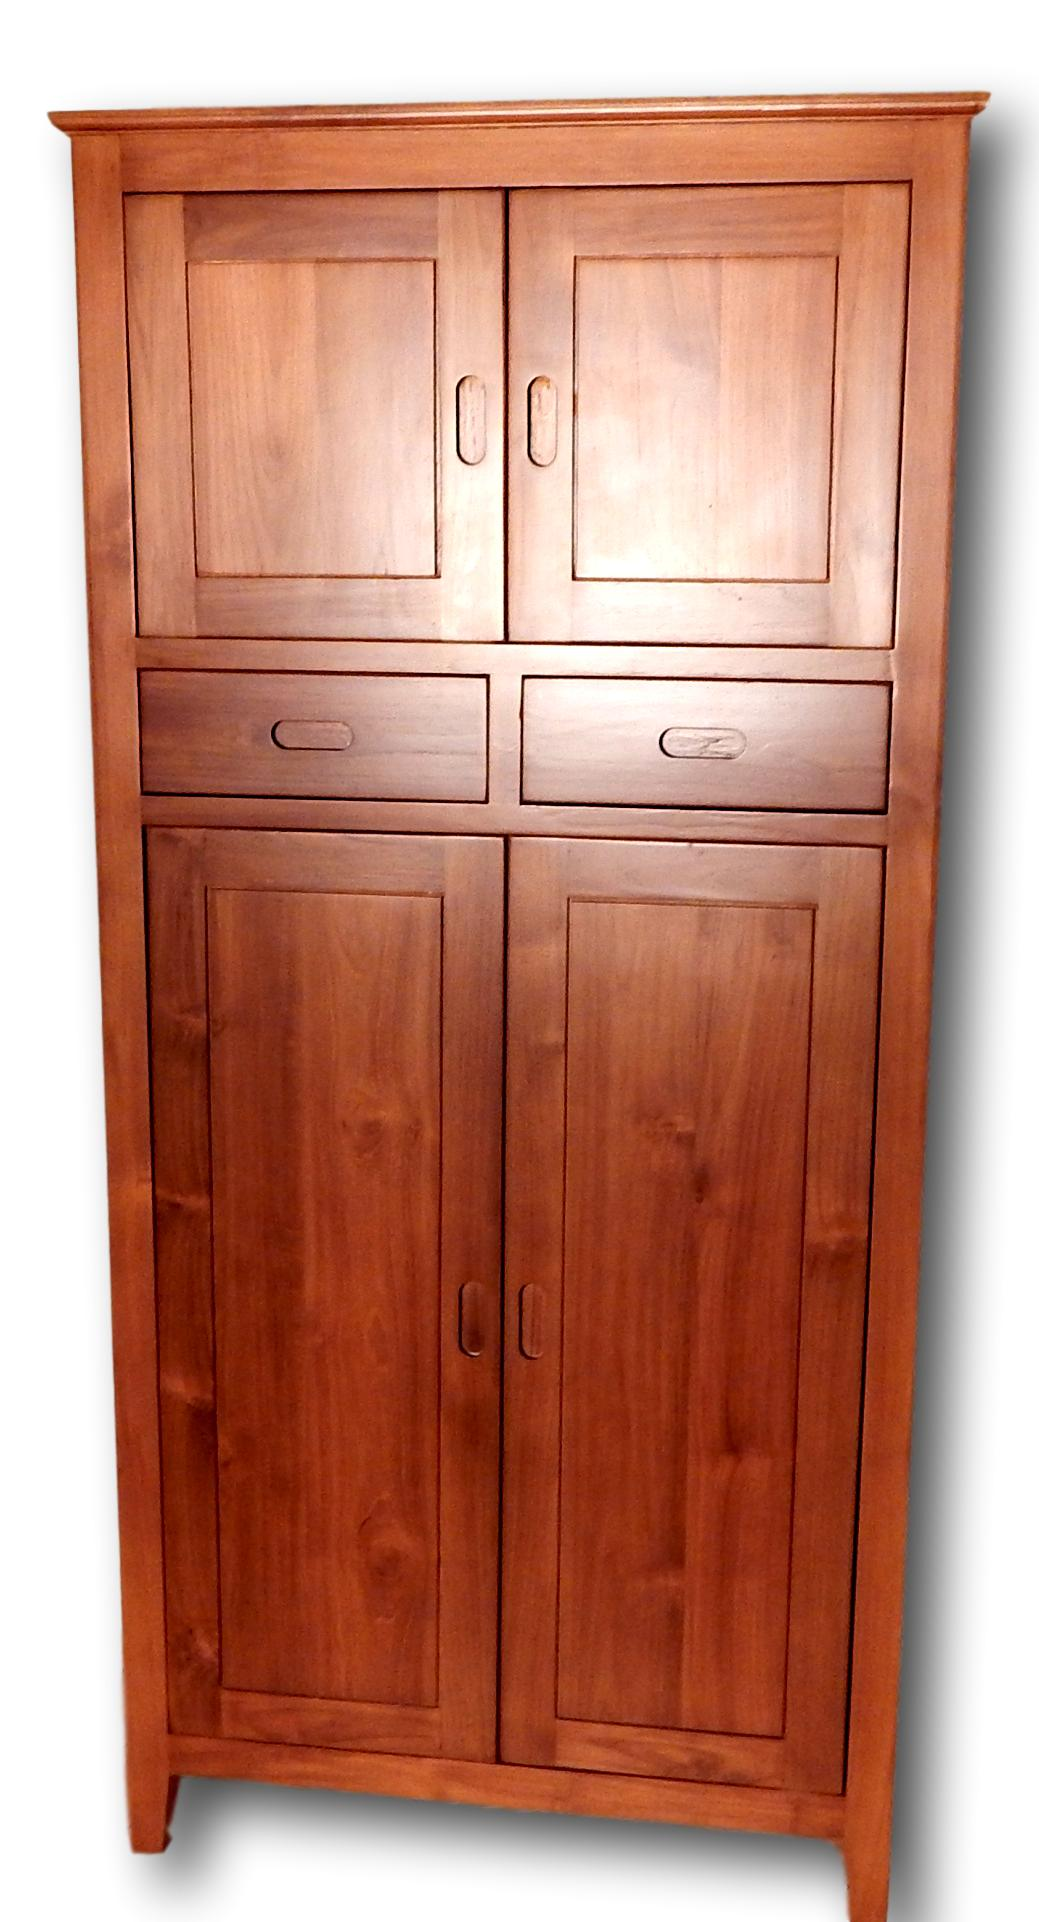 Bedroom Furniture Wood Dresser: Roots Cabinets & Tiles